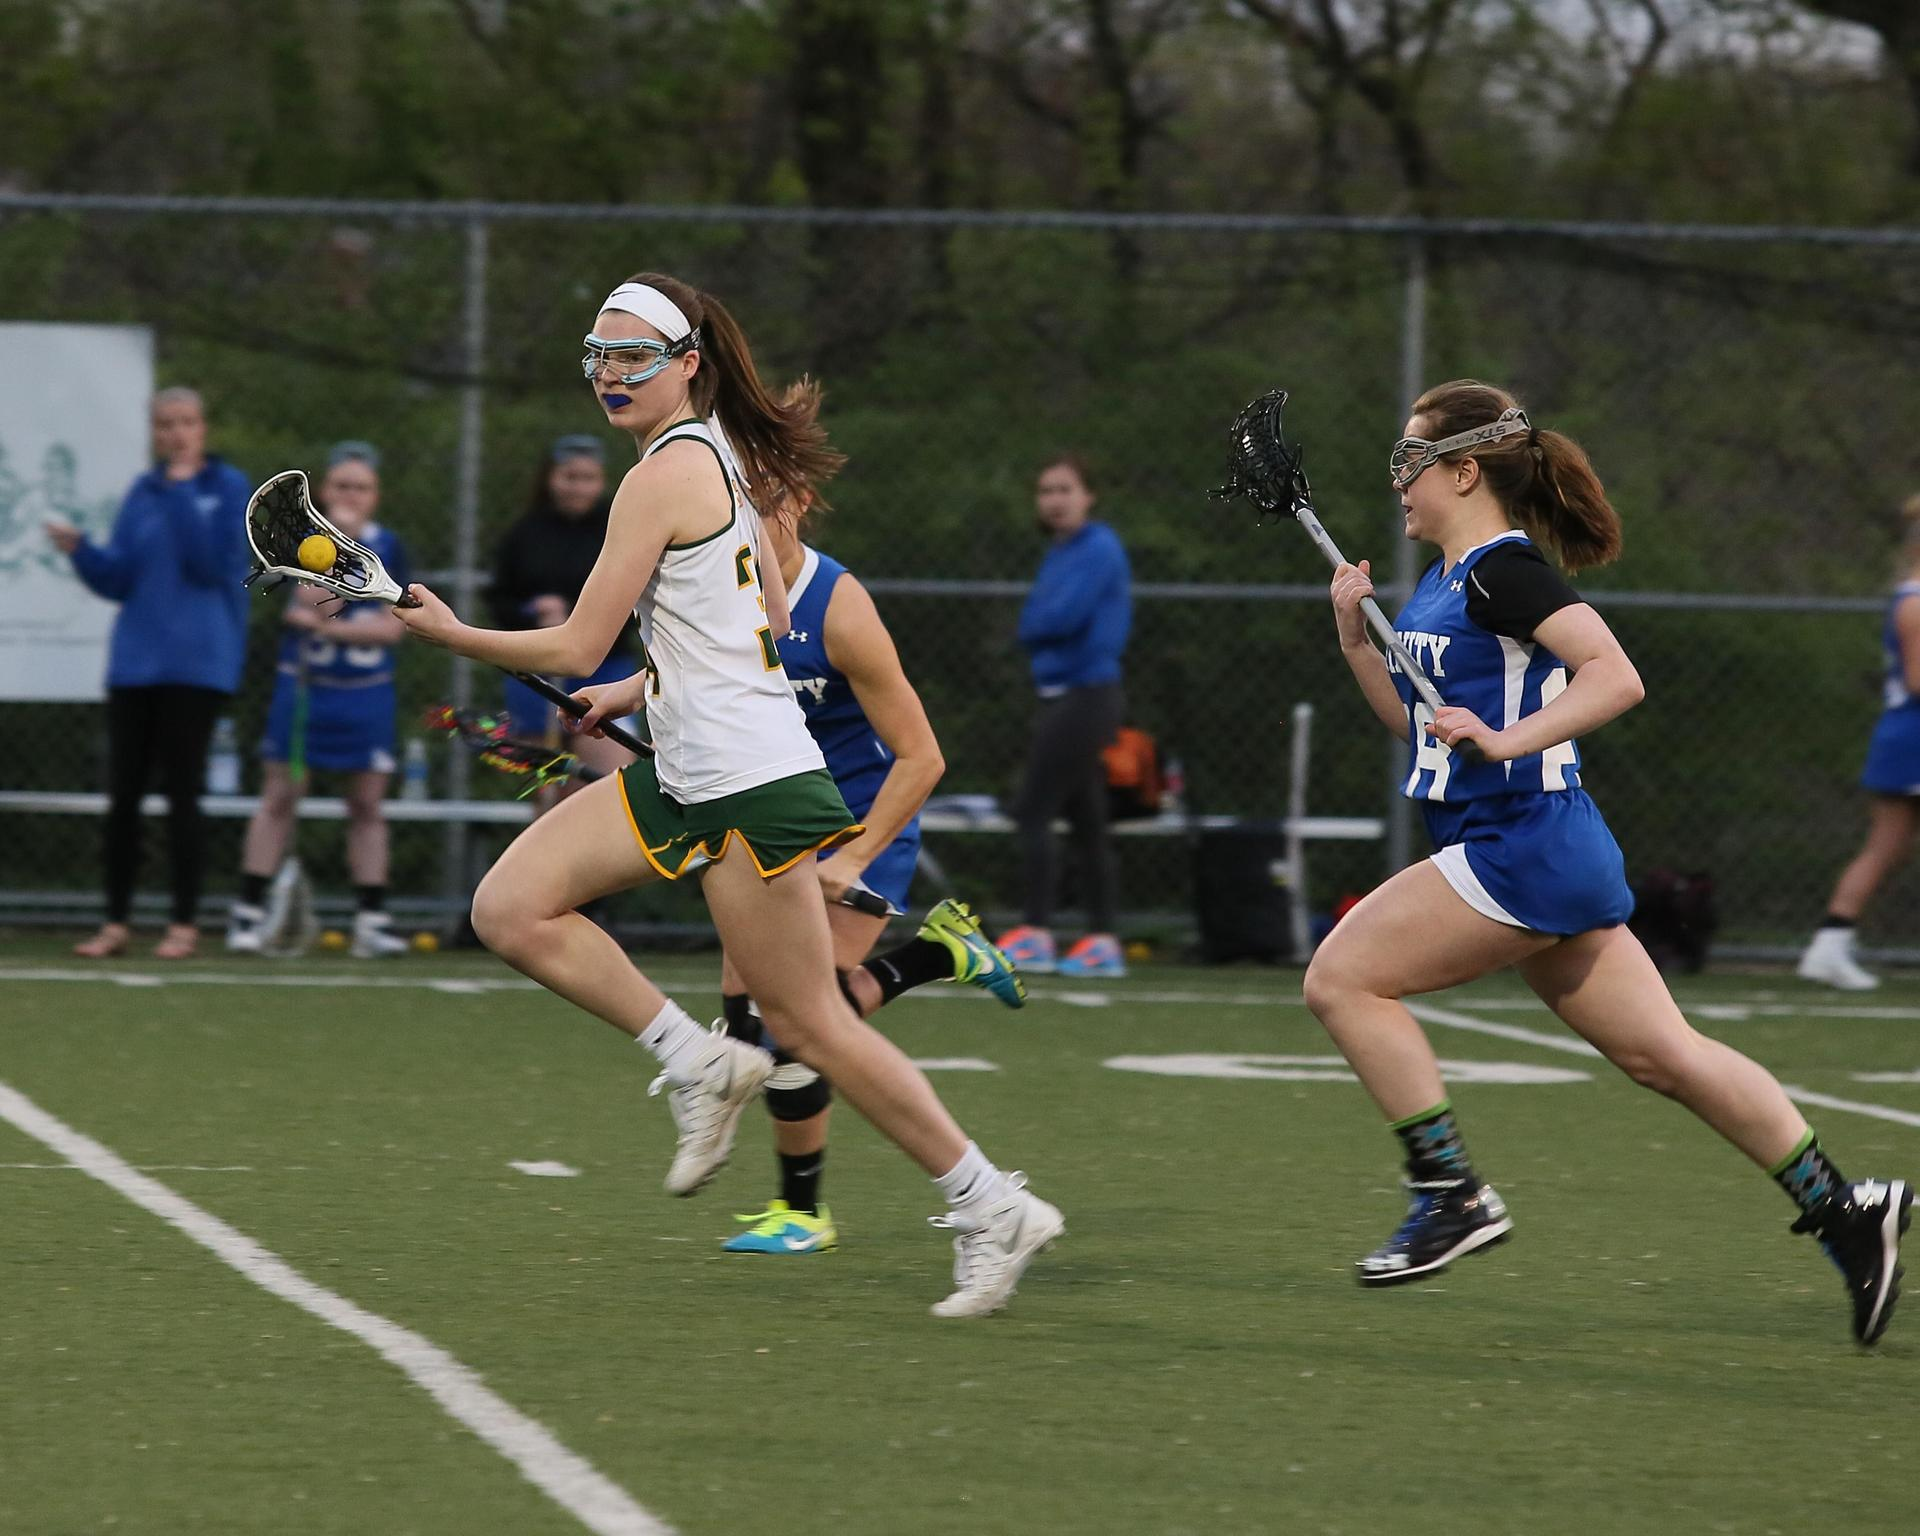 Girls Lacrosse action shot